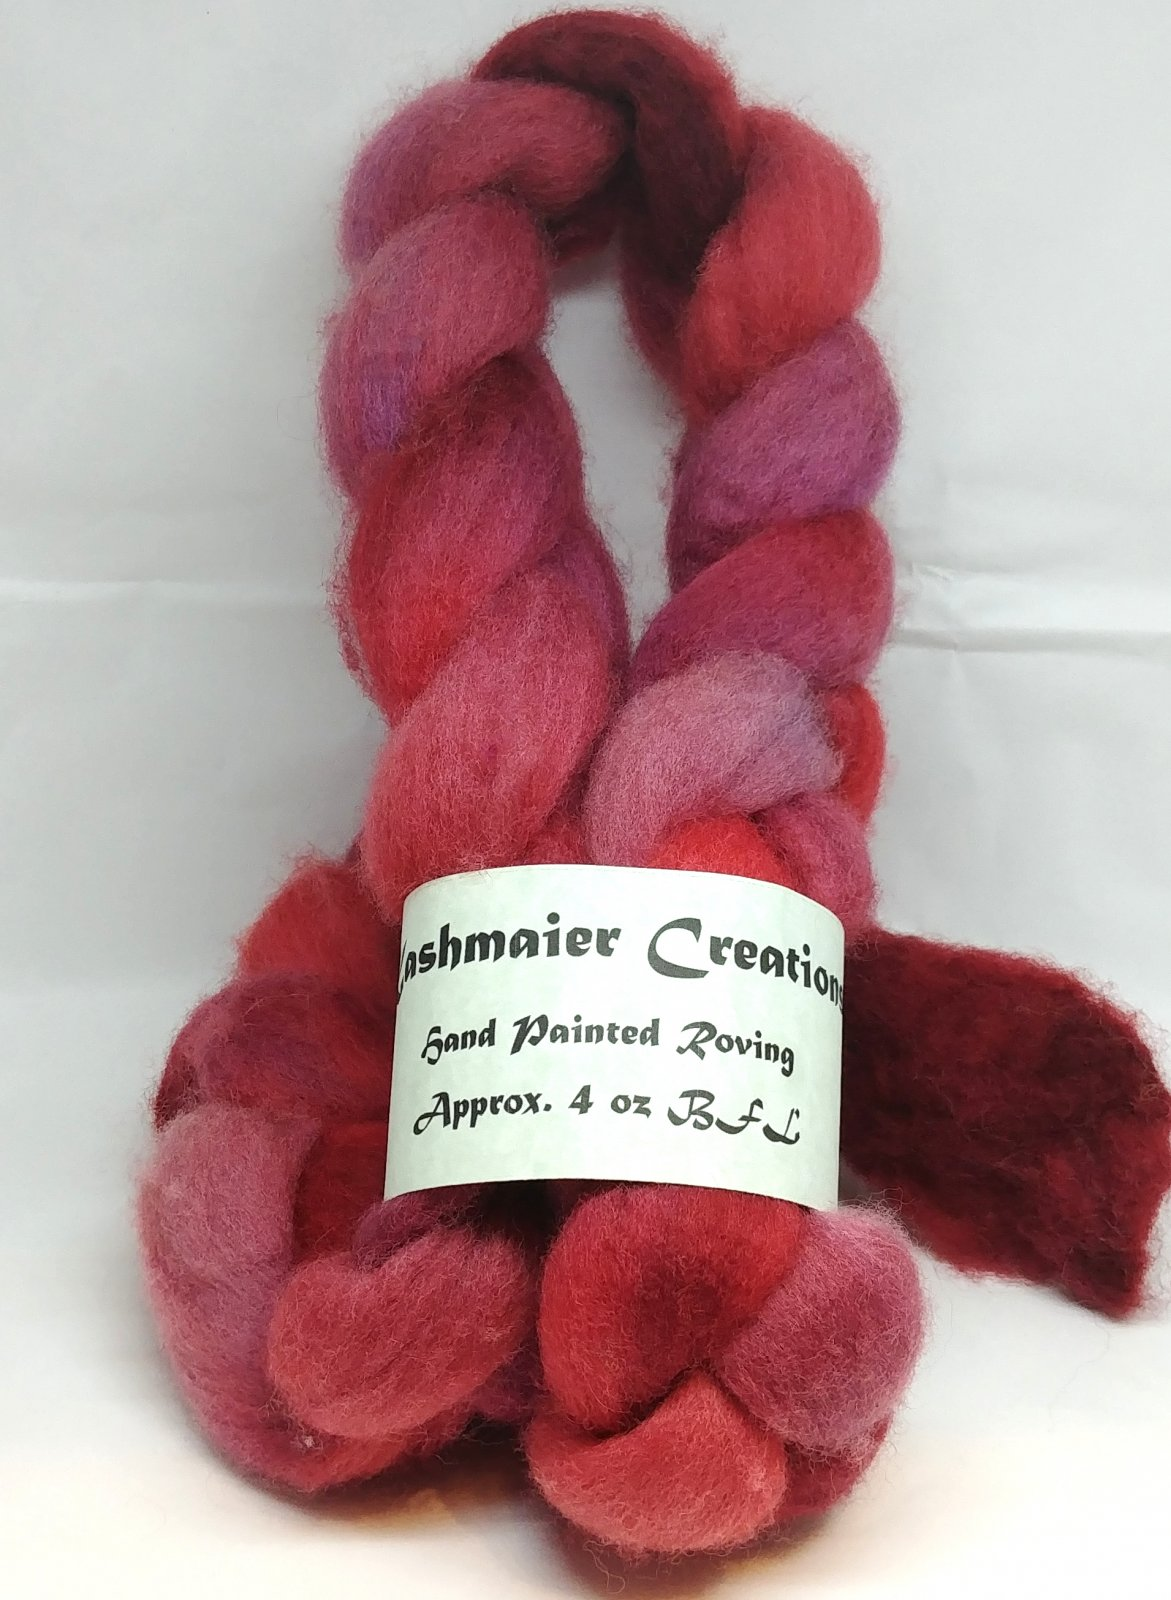 Kashmaier Creations - Hand Painted Roving (BFL)